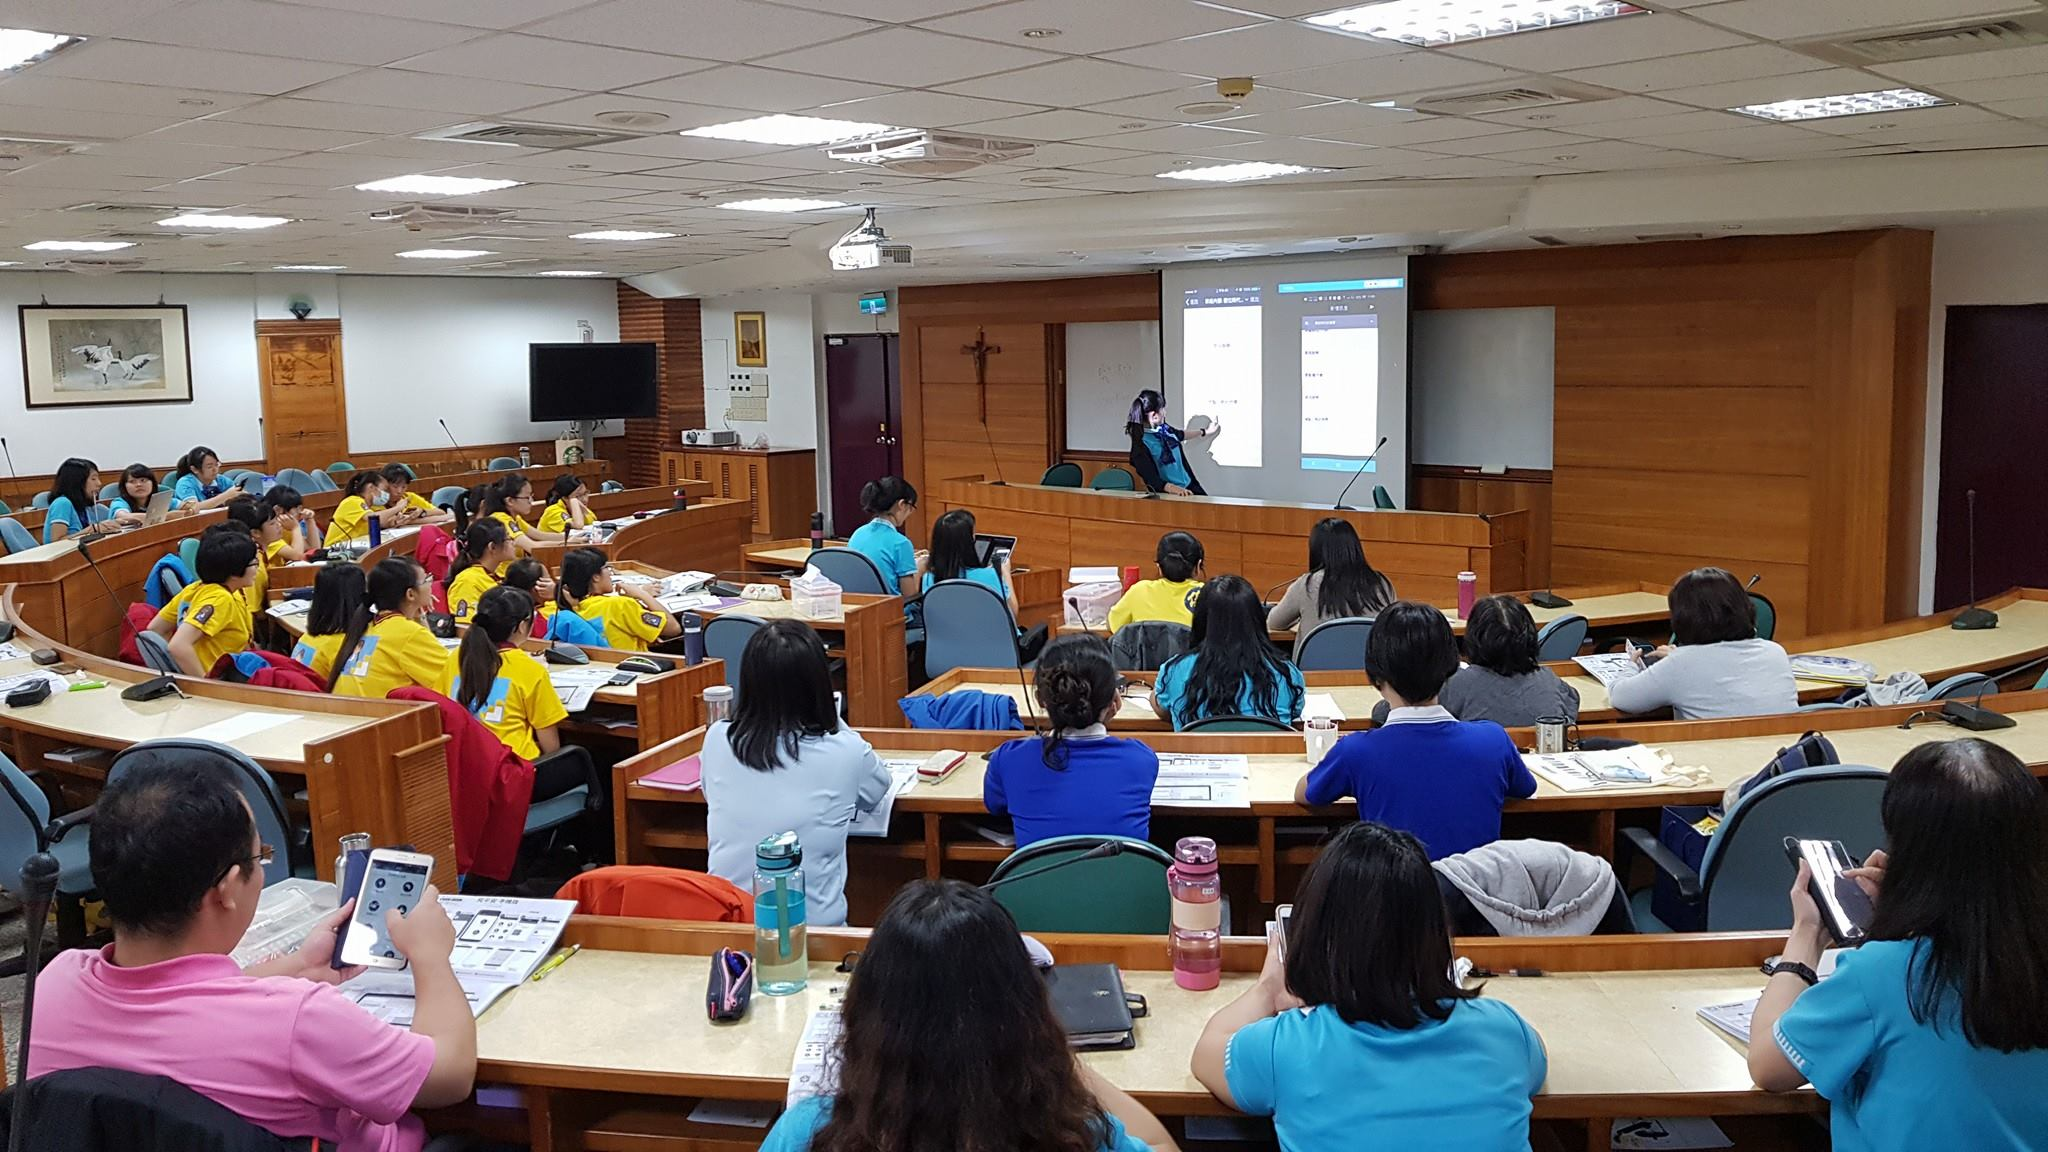 Introducing QuinJunSAT idea in the training of Girl Scouts of Taiwan in Taichung